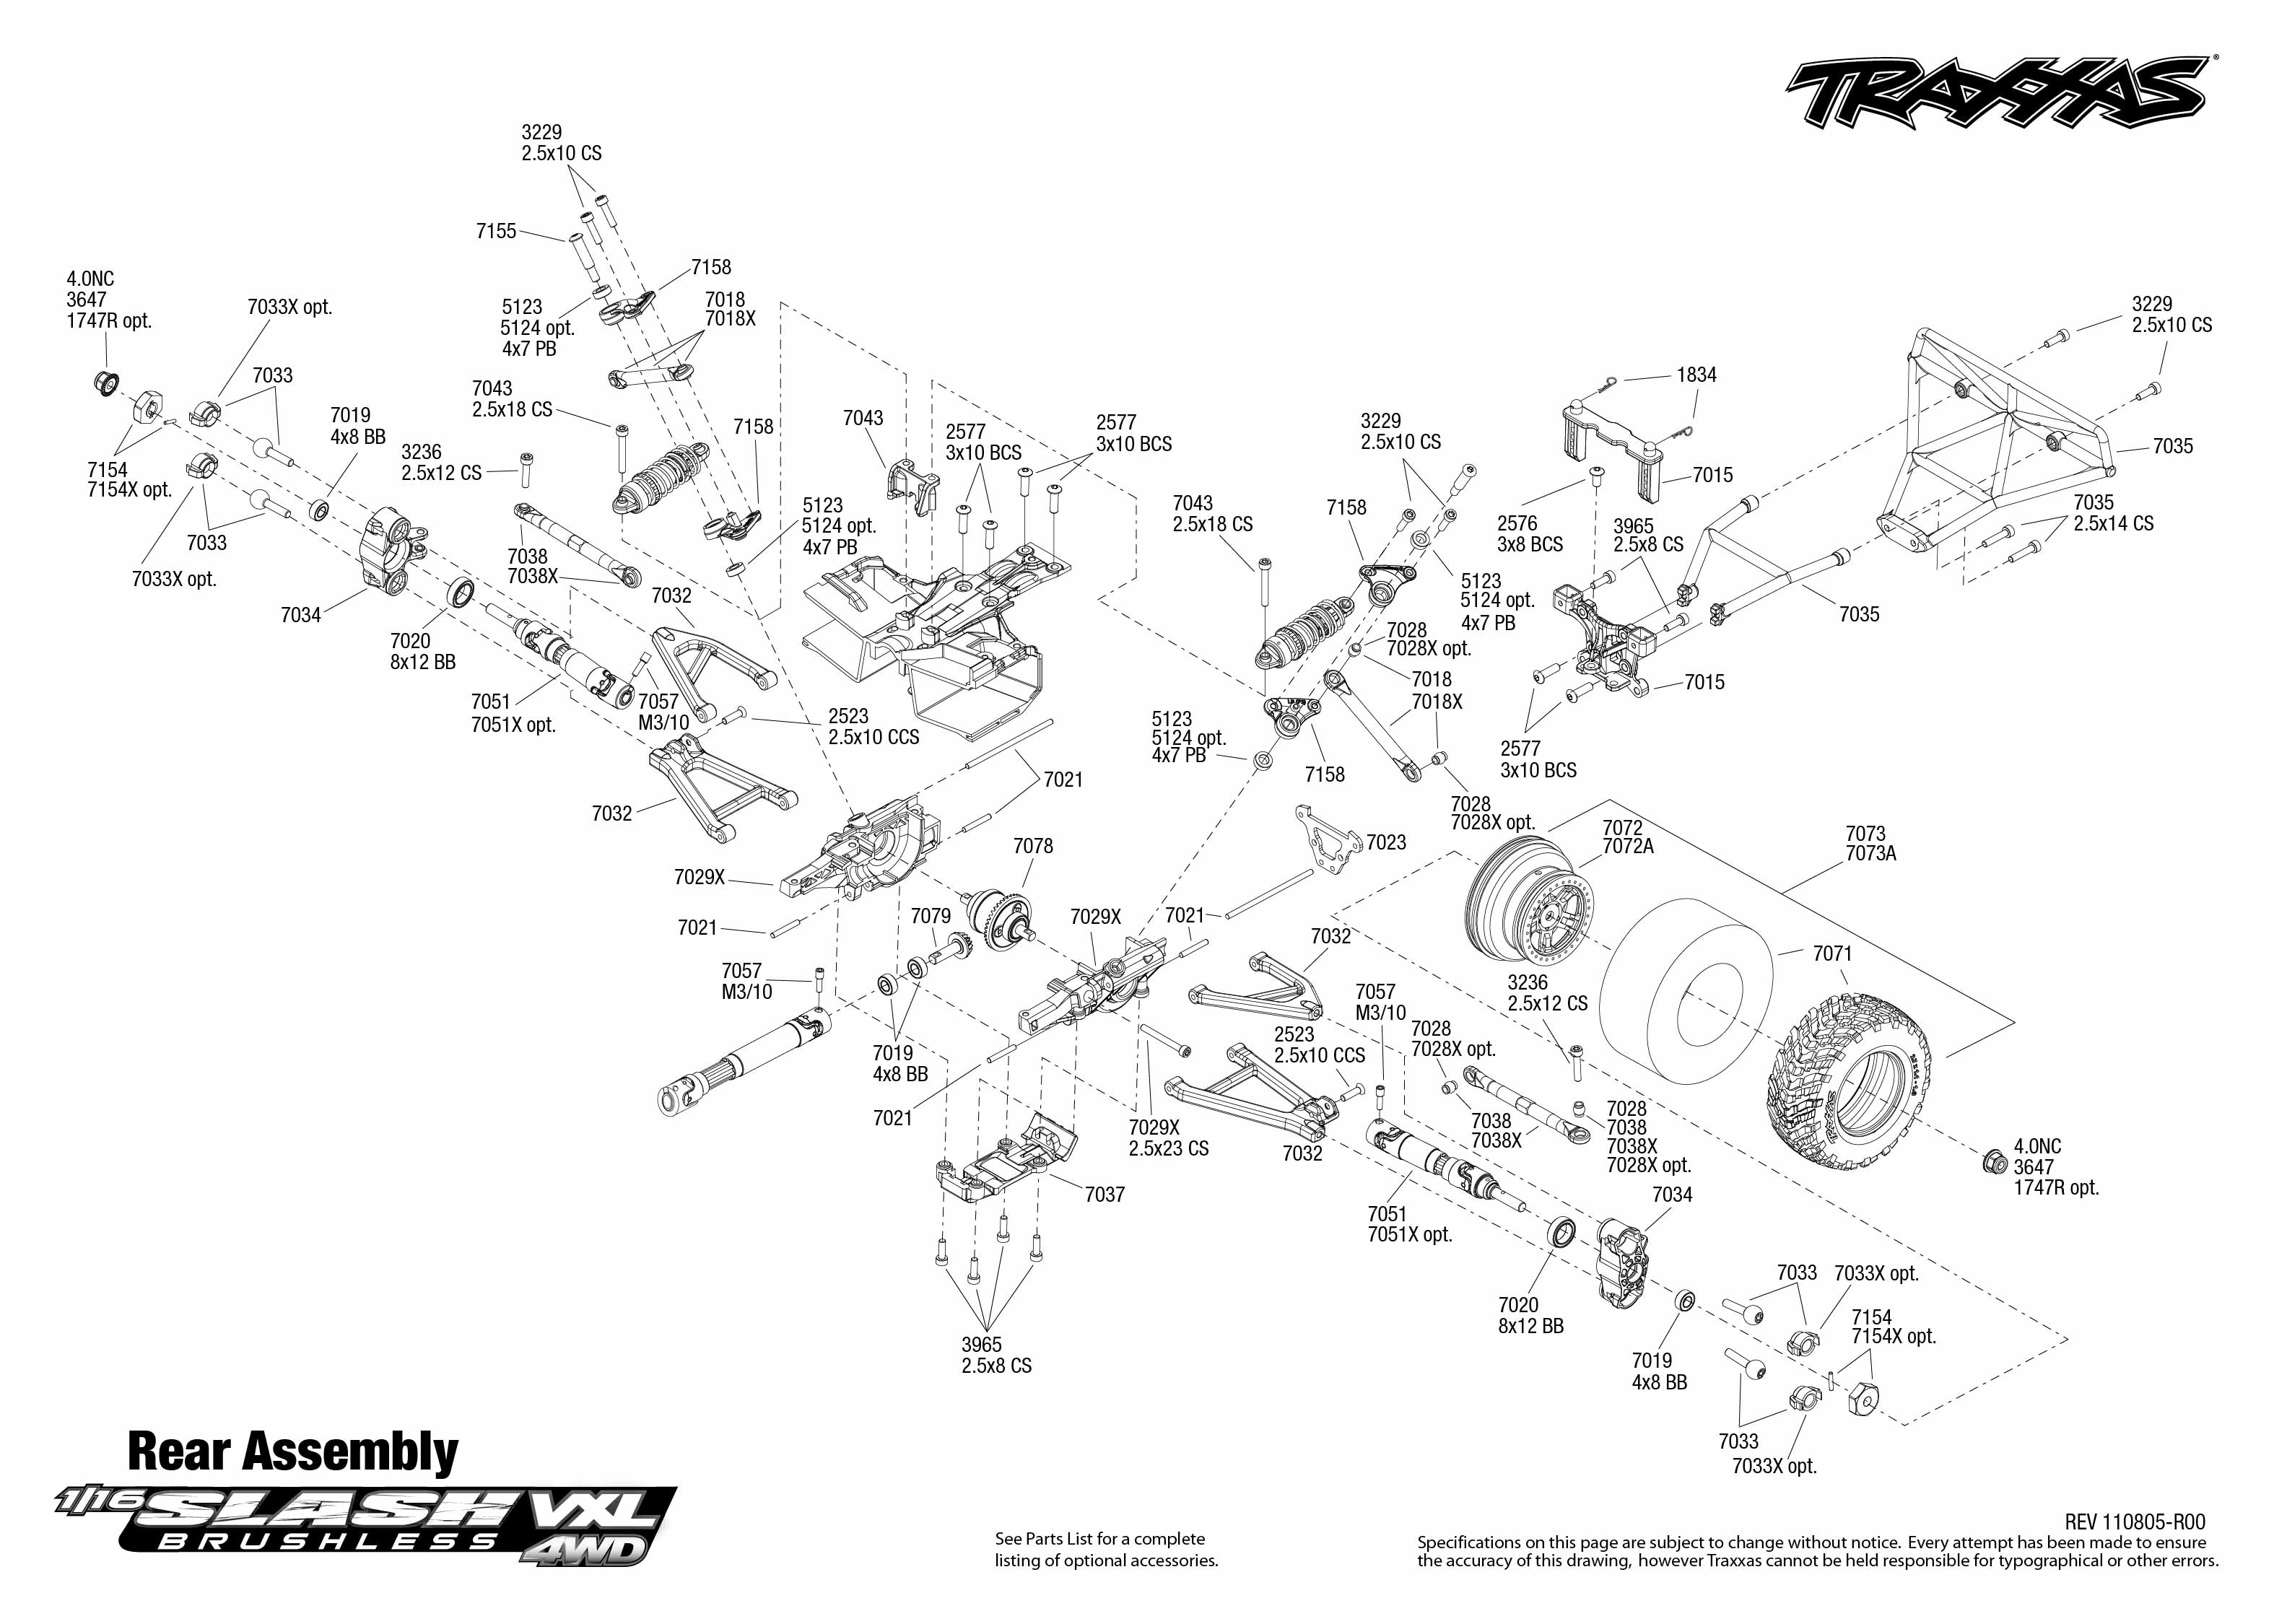 7009 rear exploded view 116 slash 4x4 vxl traxxas use magnifier buttons to zoom exploded view click part numbers for details or to add to cart pooptronica Images